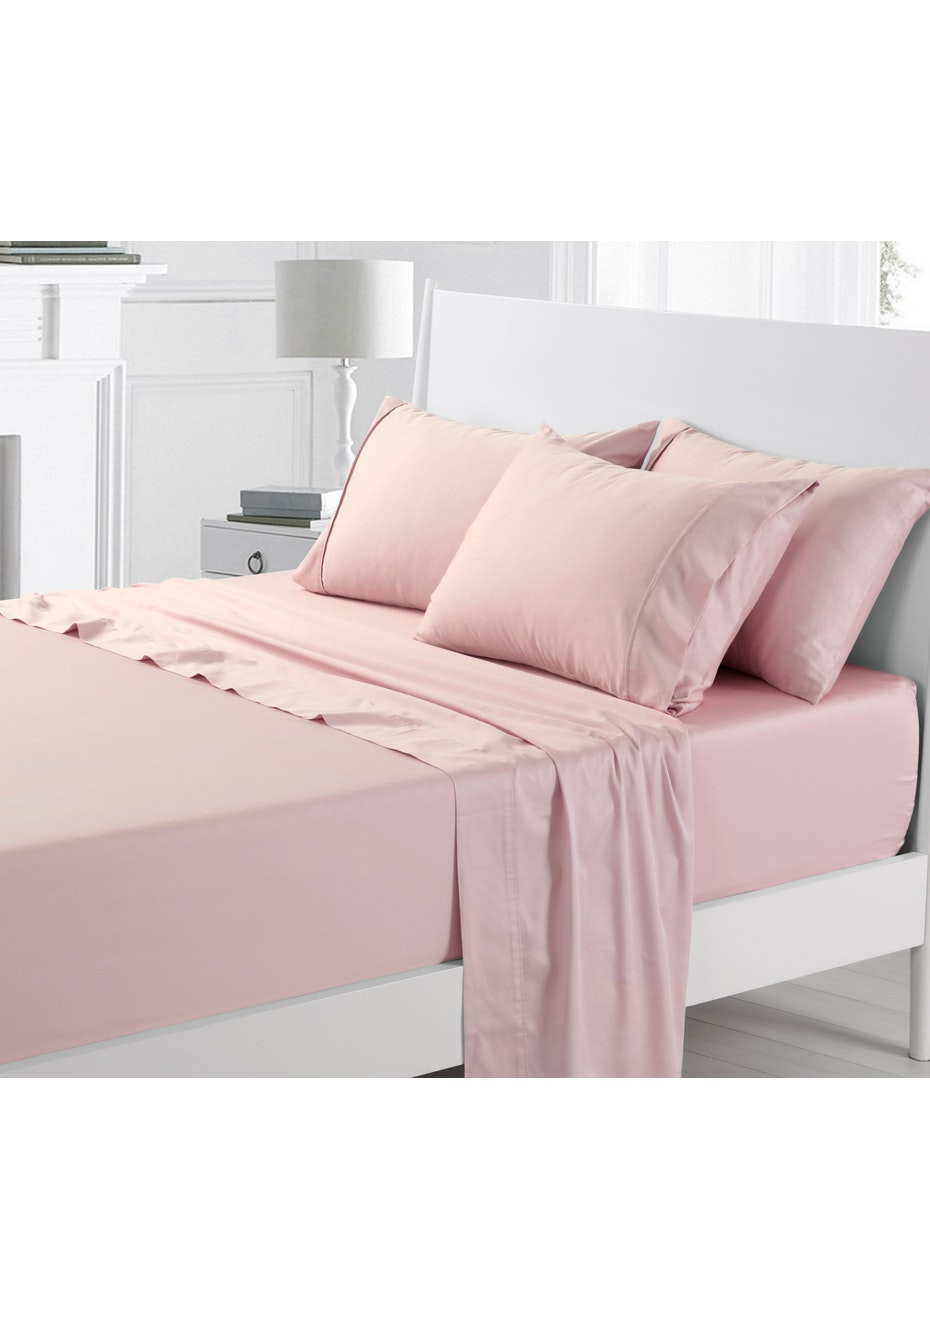 Rose Pink 300TC Cotton Sateen Sheet Set - King Bed